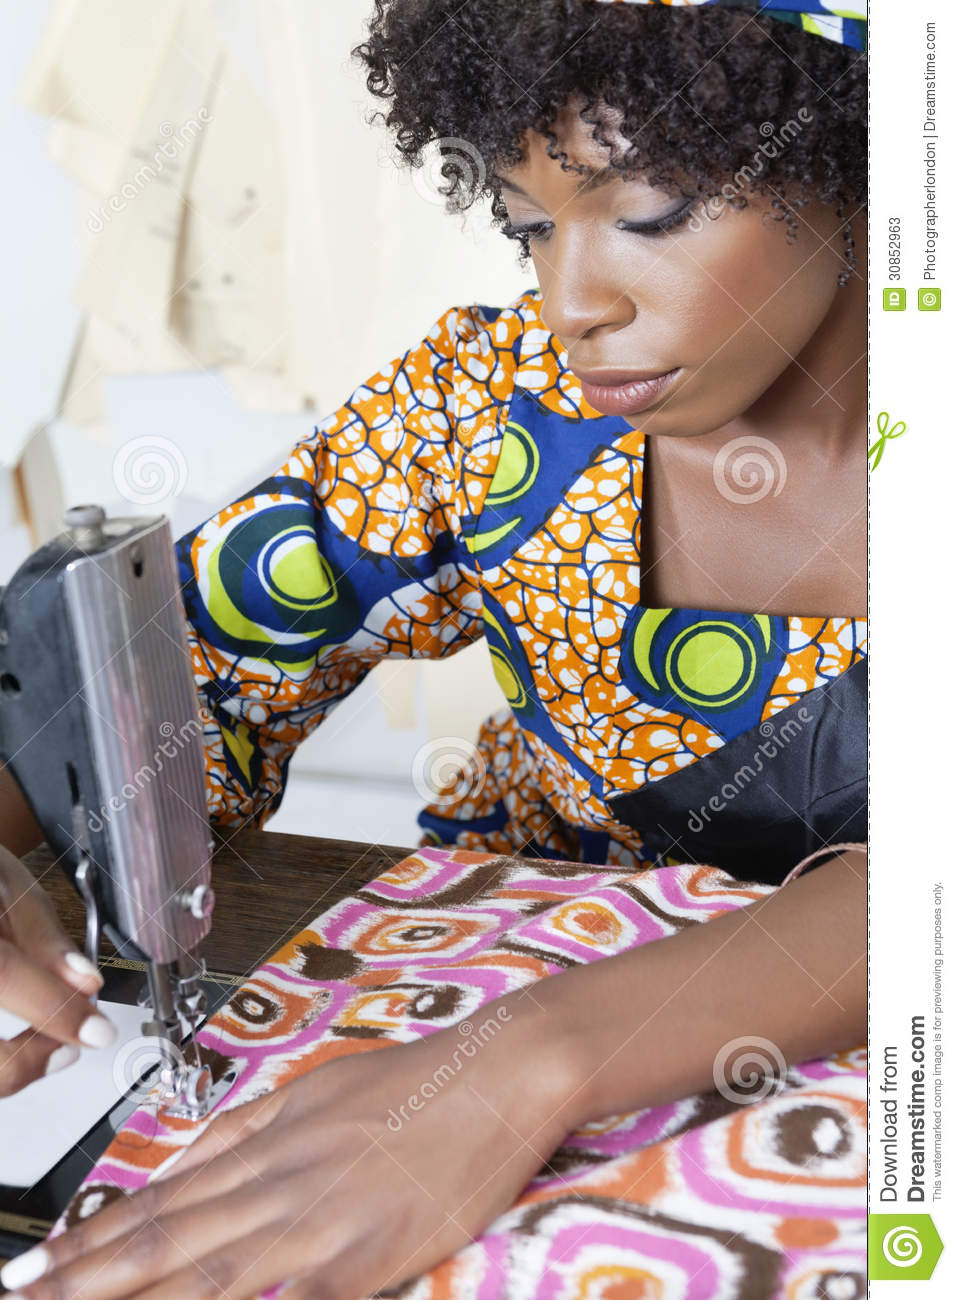 African American Female Tailor Stitching Patterned Cloth